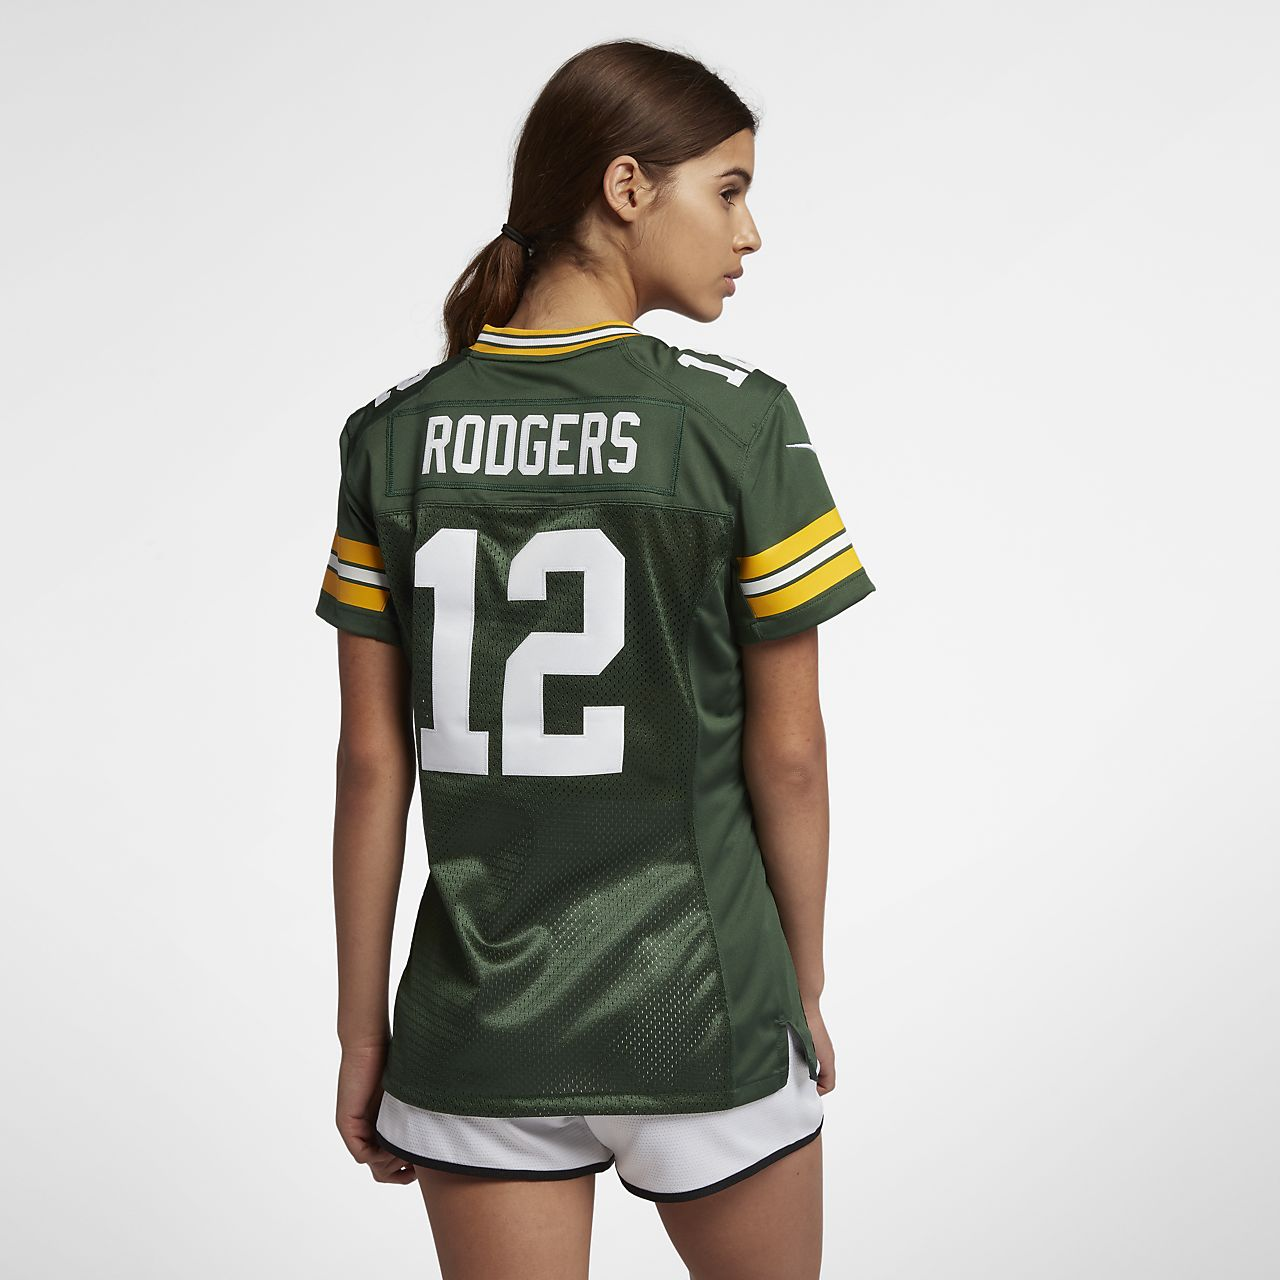 642a3566f55 ... NFL Green Bay Packers Limited Classic (Aaron Rodgers) Women's Football  Jersey